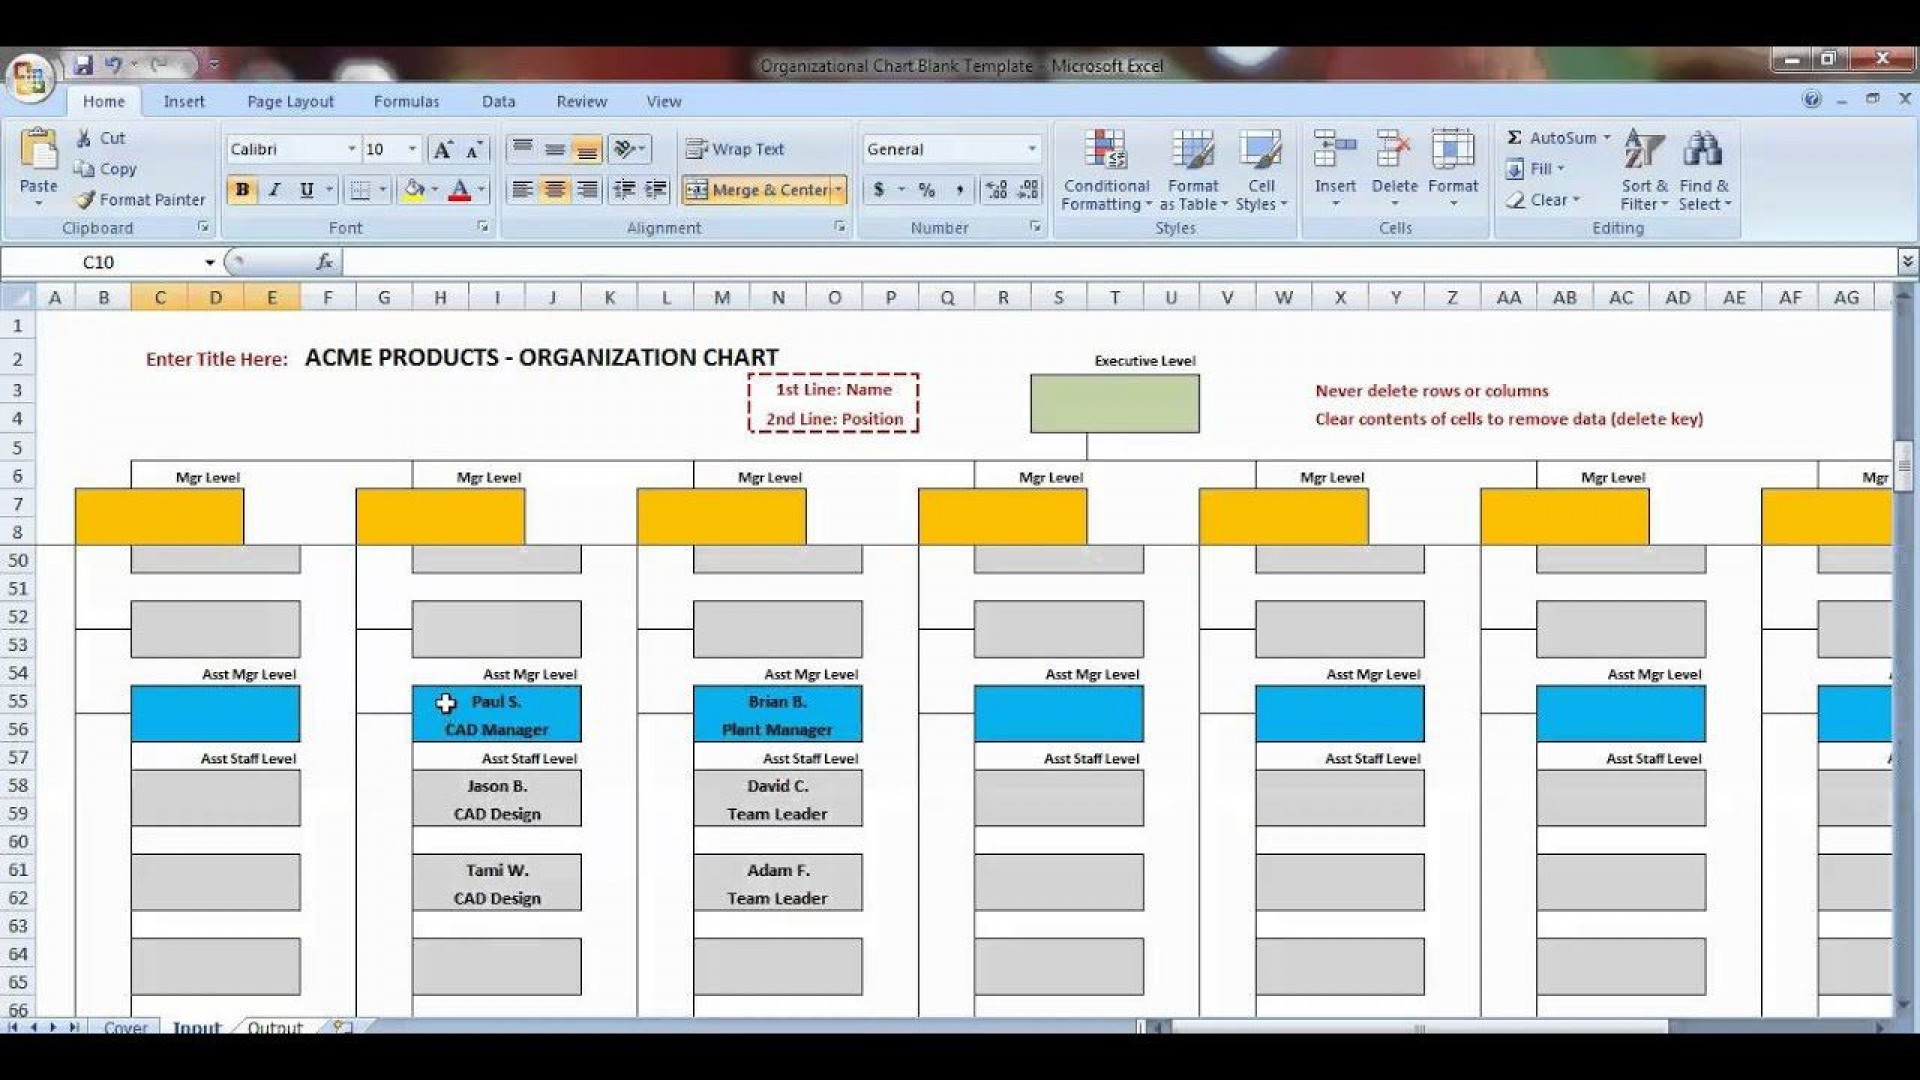 007 Awful Organizational Chart Template Excel Design  Organization Download Org1920